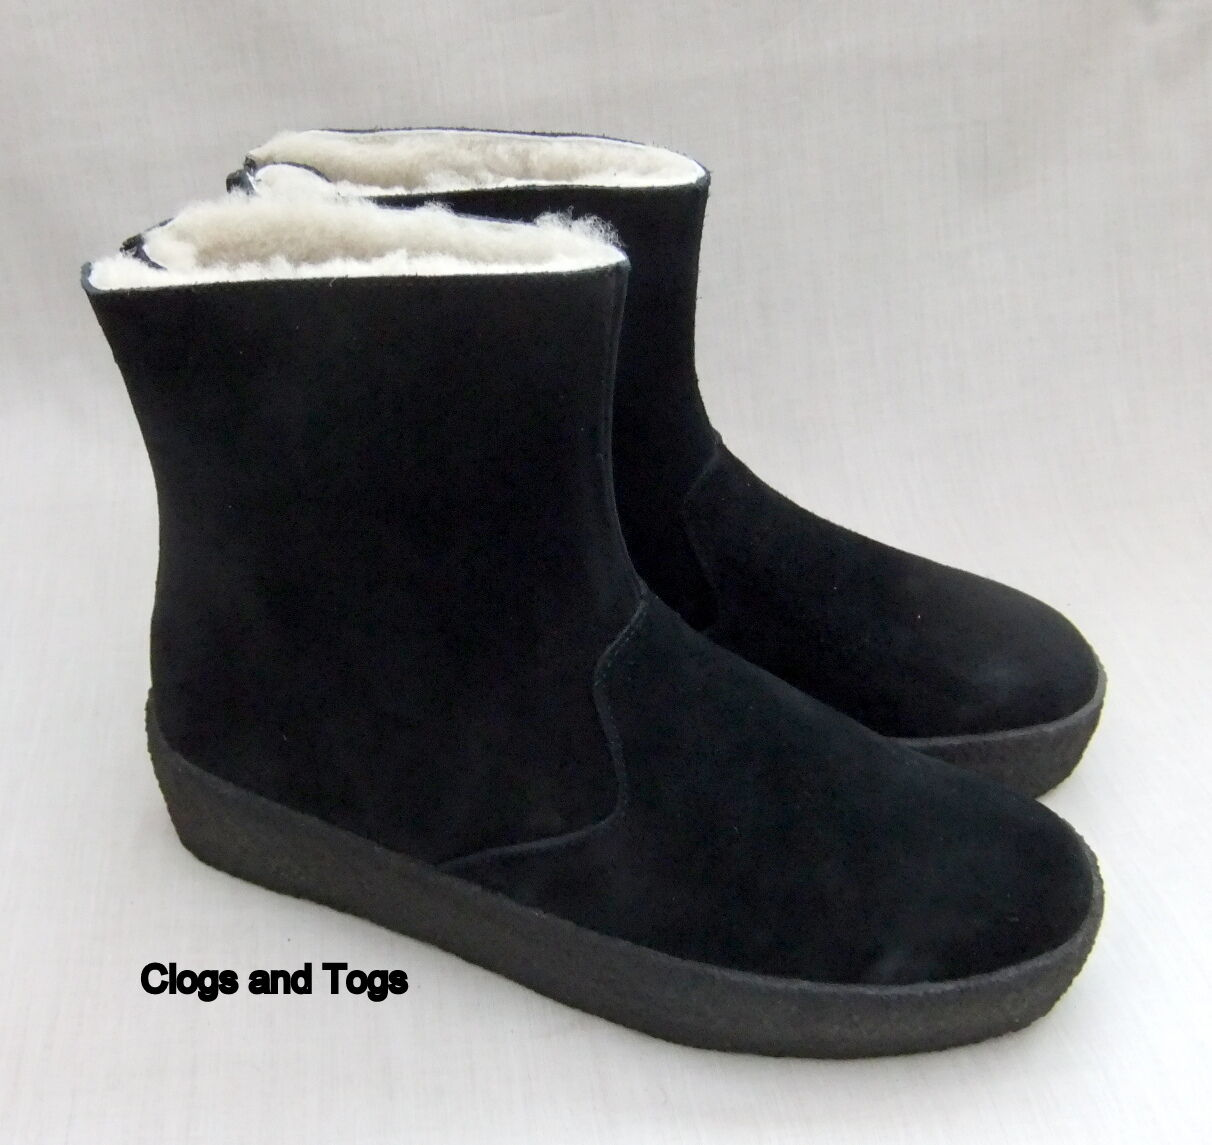 NEW CLARKS ORIGINALS JEZ ICE WOMENS BLACK SUEDE SHEEPSKIN BOOTS SIZE 4 / 37